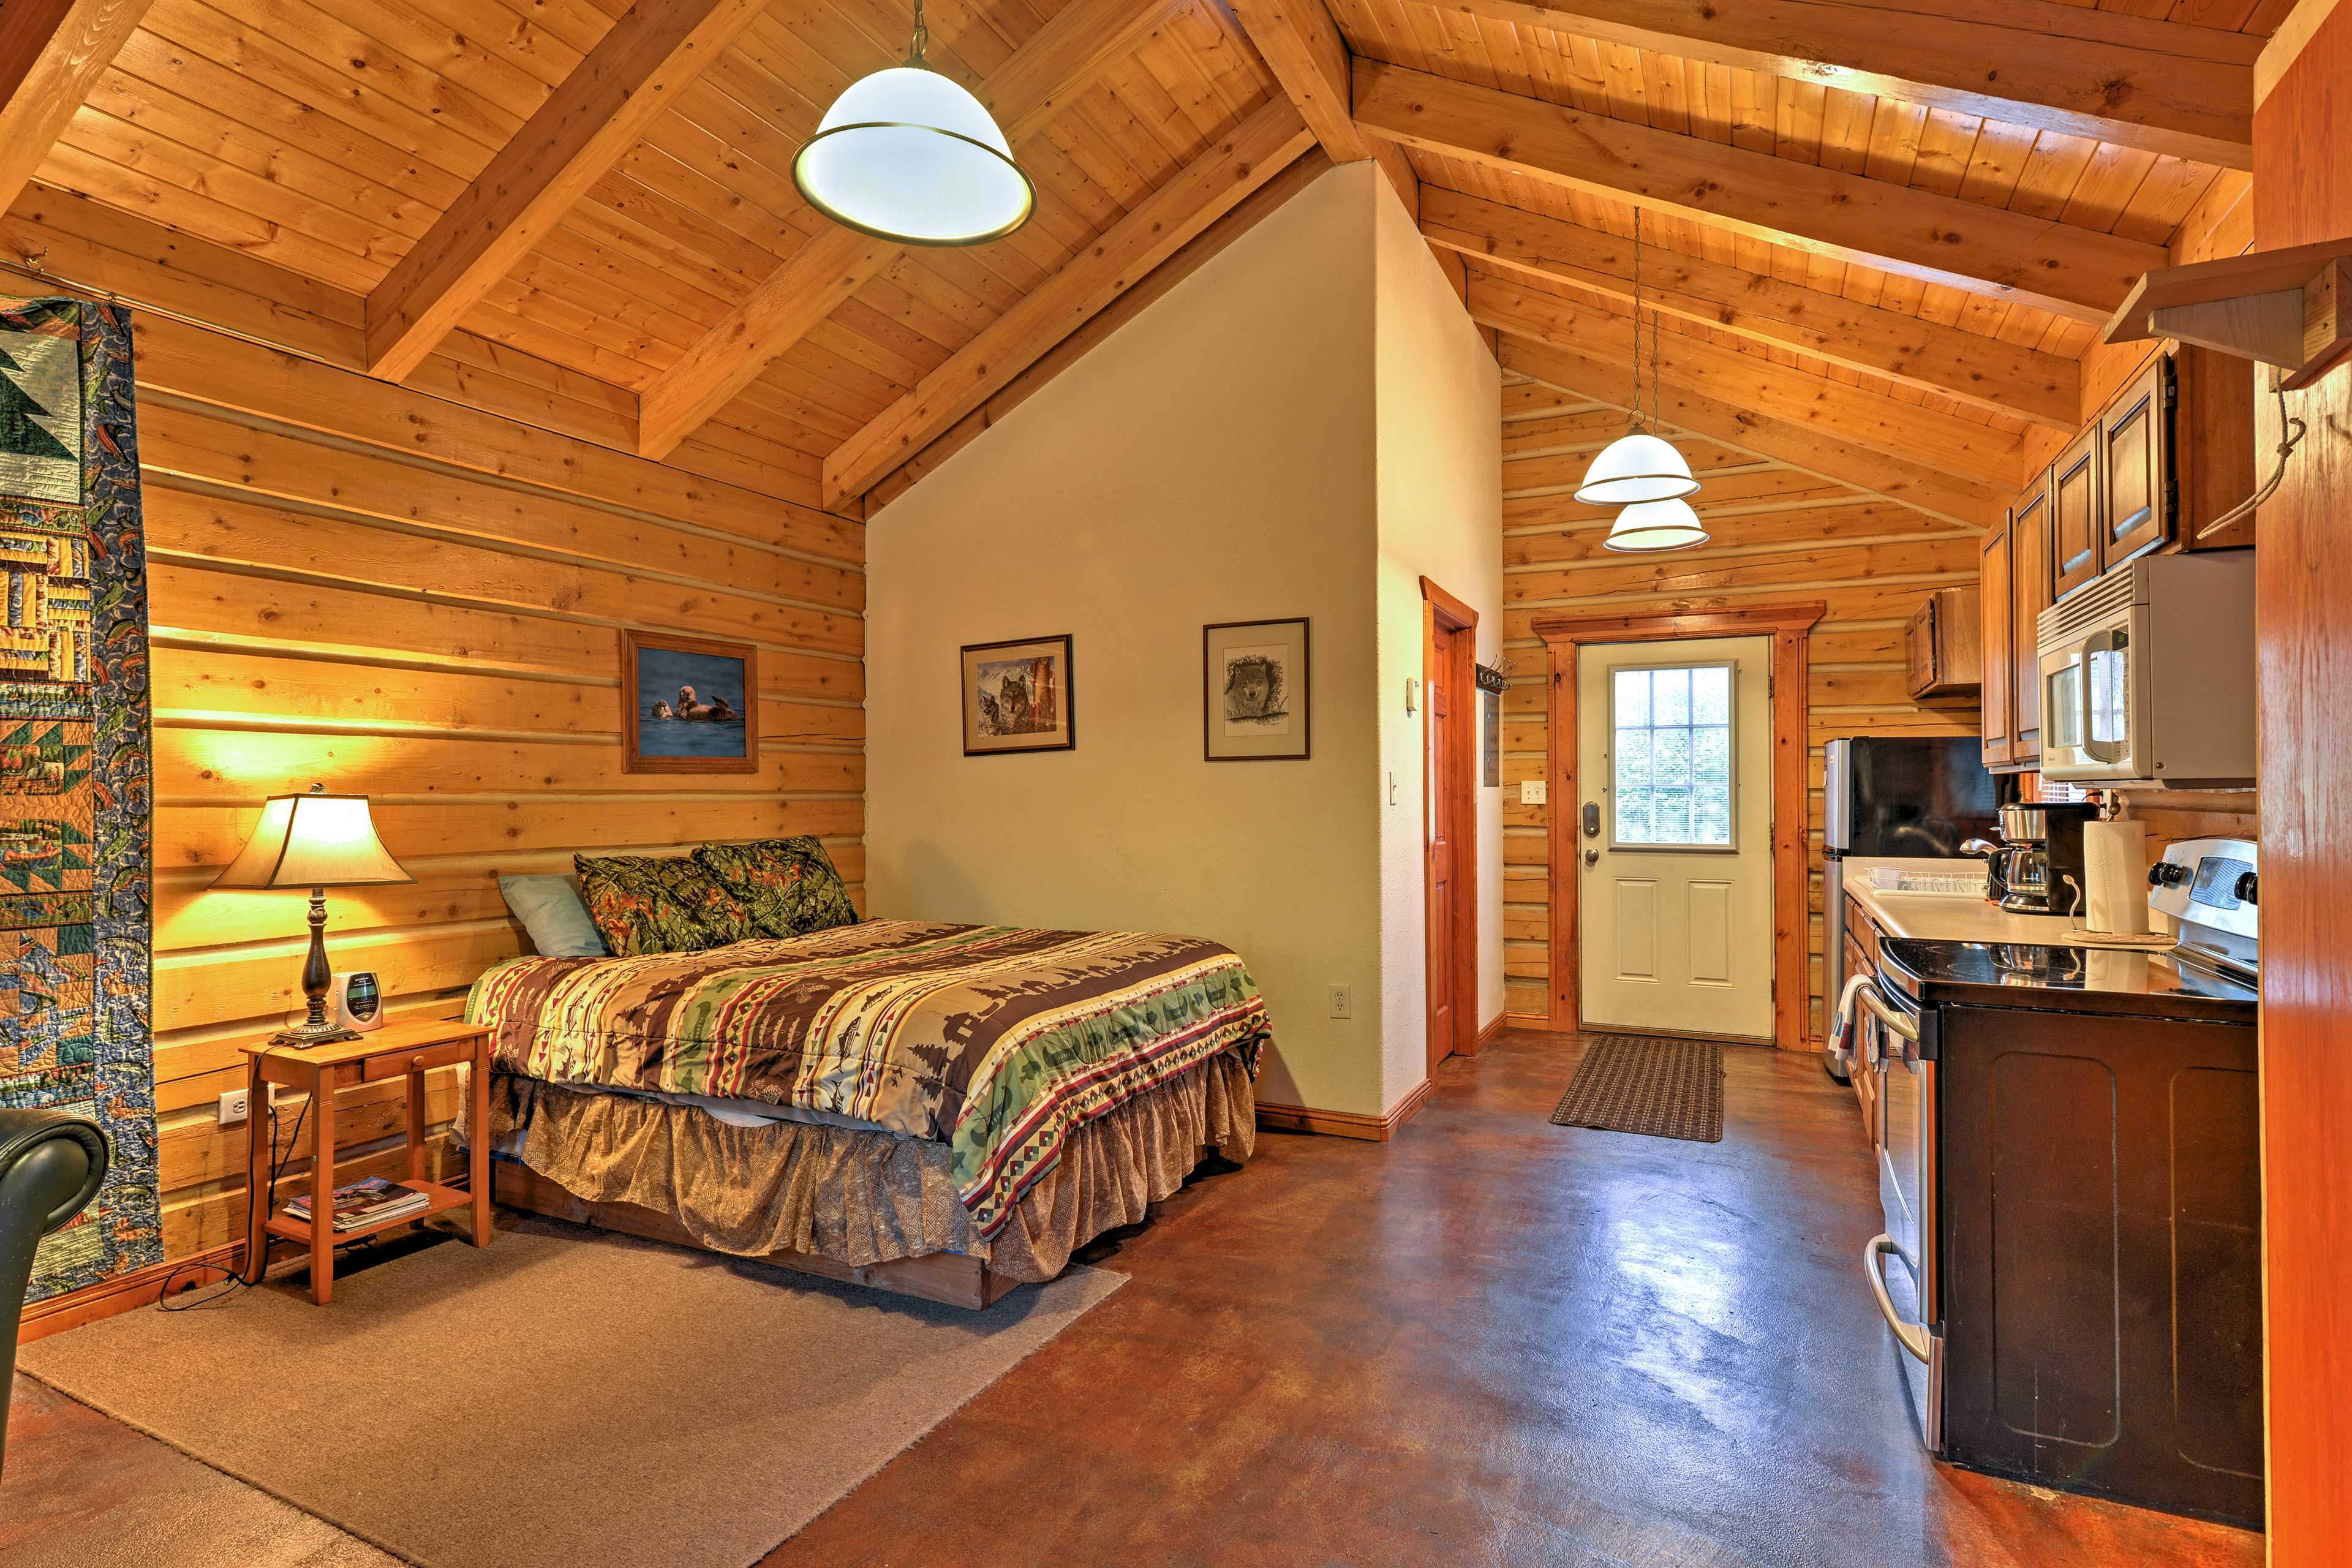 The studio cabin is the perfect getaway for up to 4 guests.